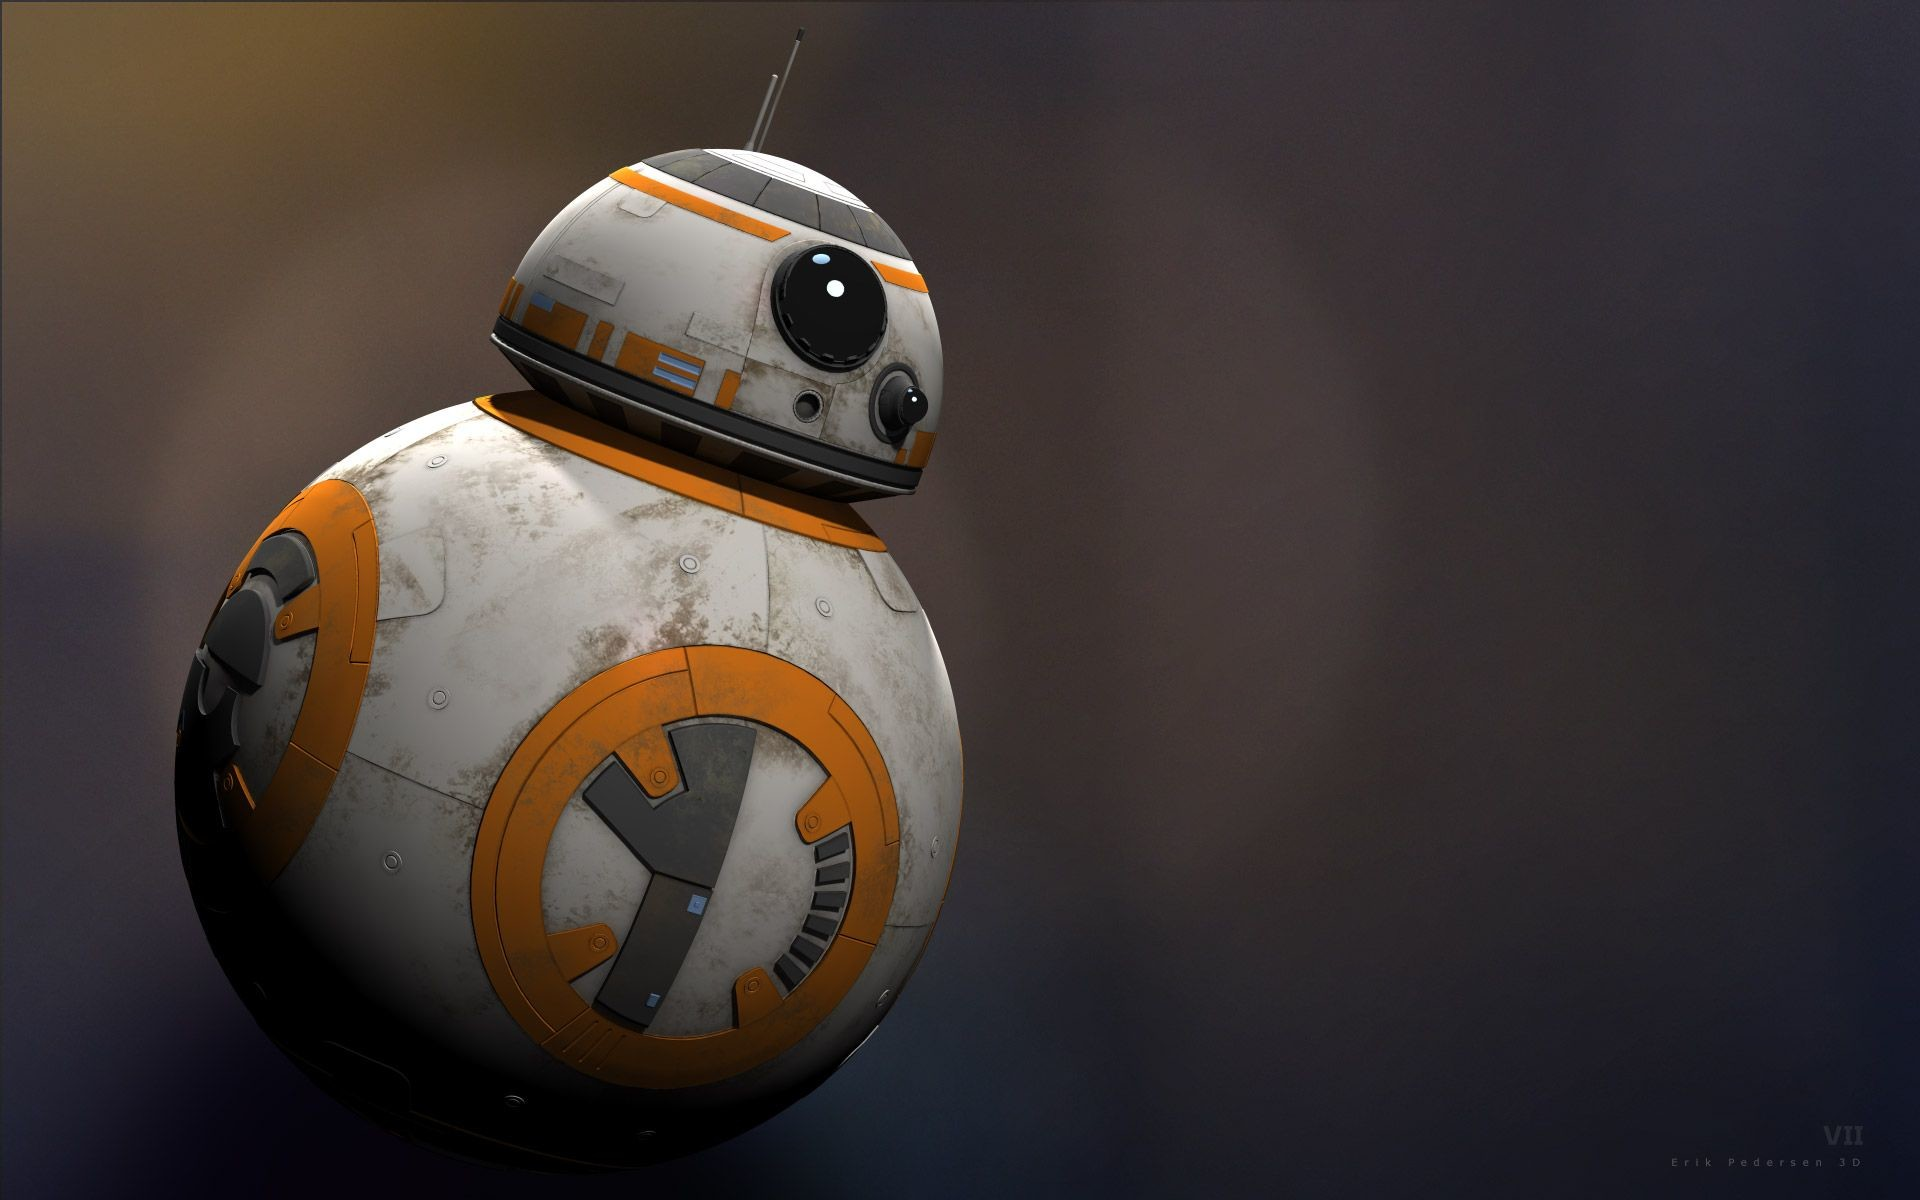 1920x1200 Bb8 Droid Wallpaper Star Wars Vii Bb8 Droid Star Wars Bb8 1920x1200 Wallpaper Teahub Io